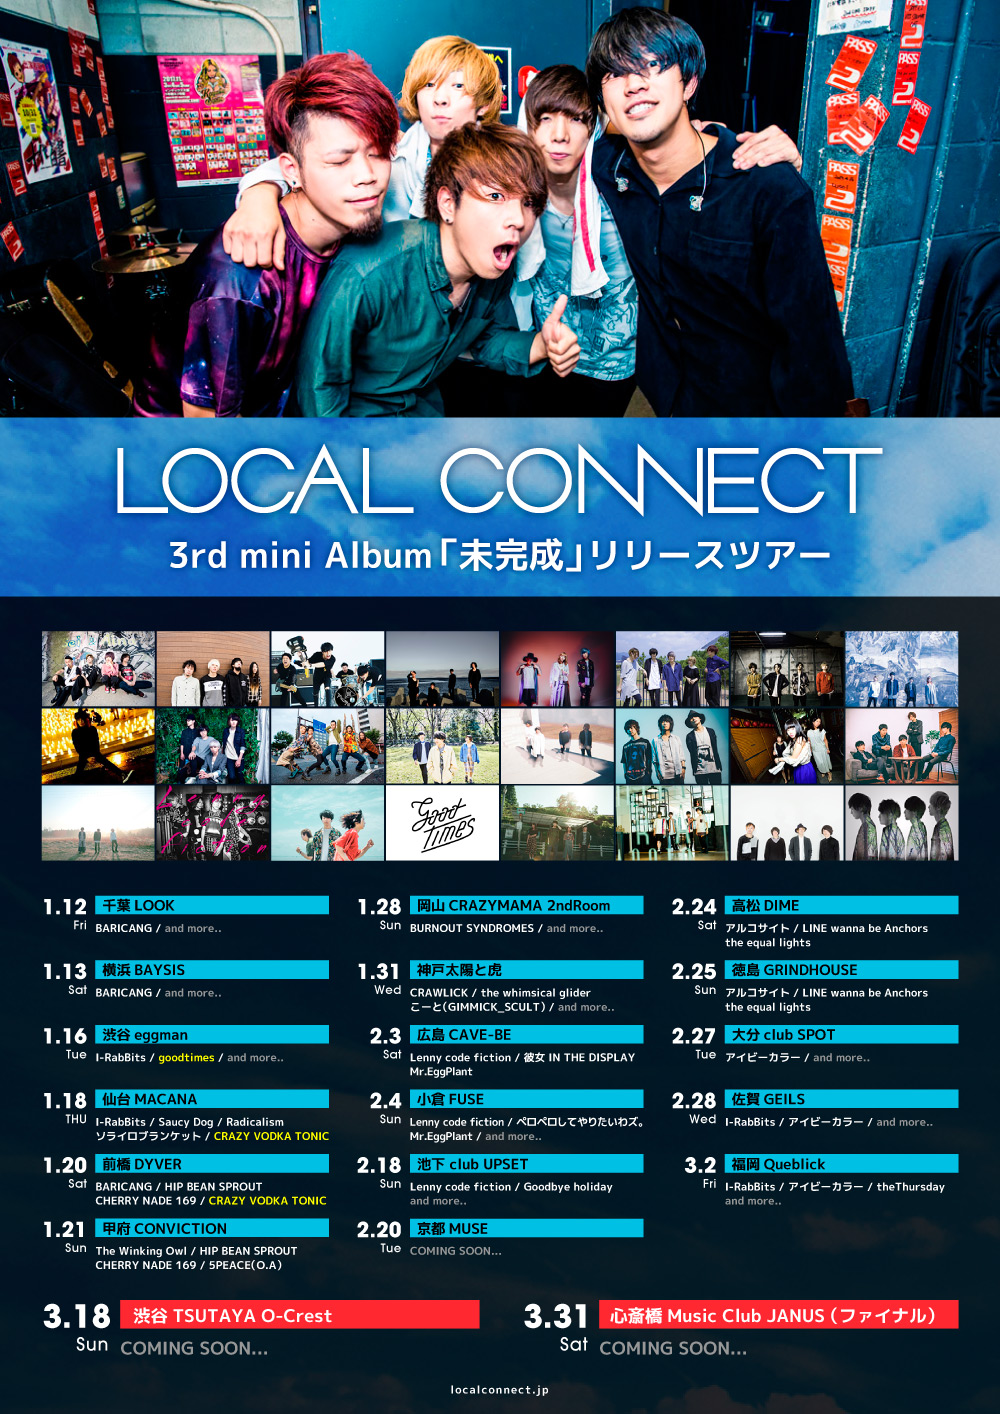 LOCAL CONNECT 3rd mini album「未完成」リリースツアー